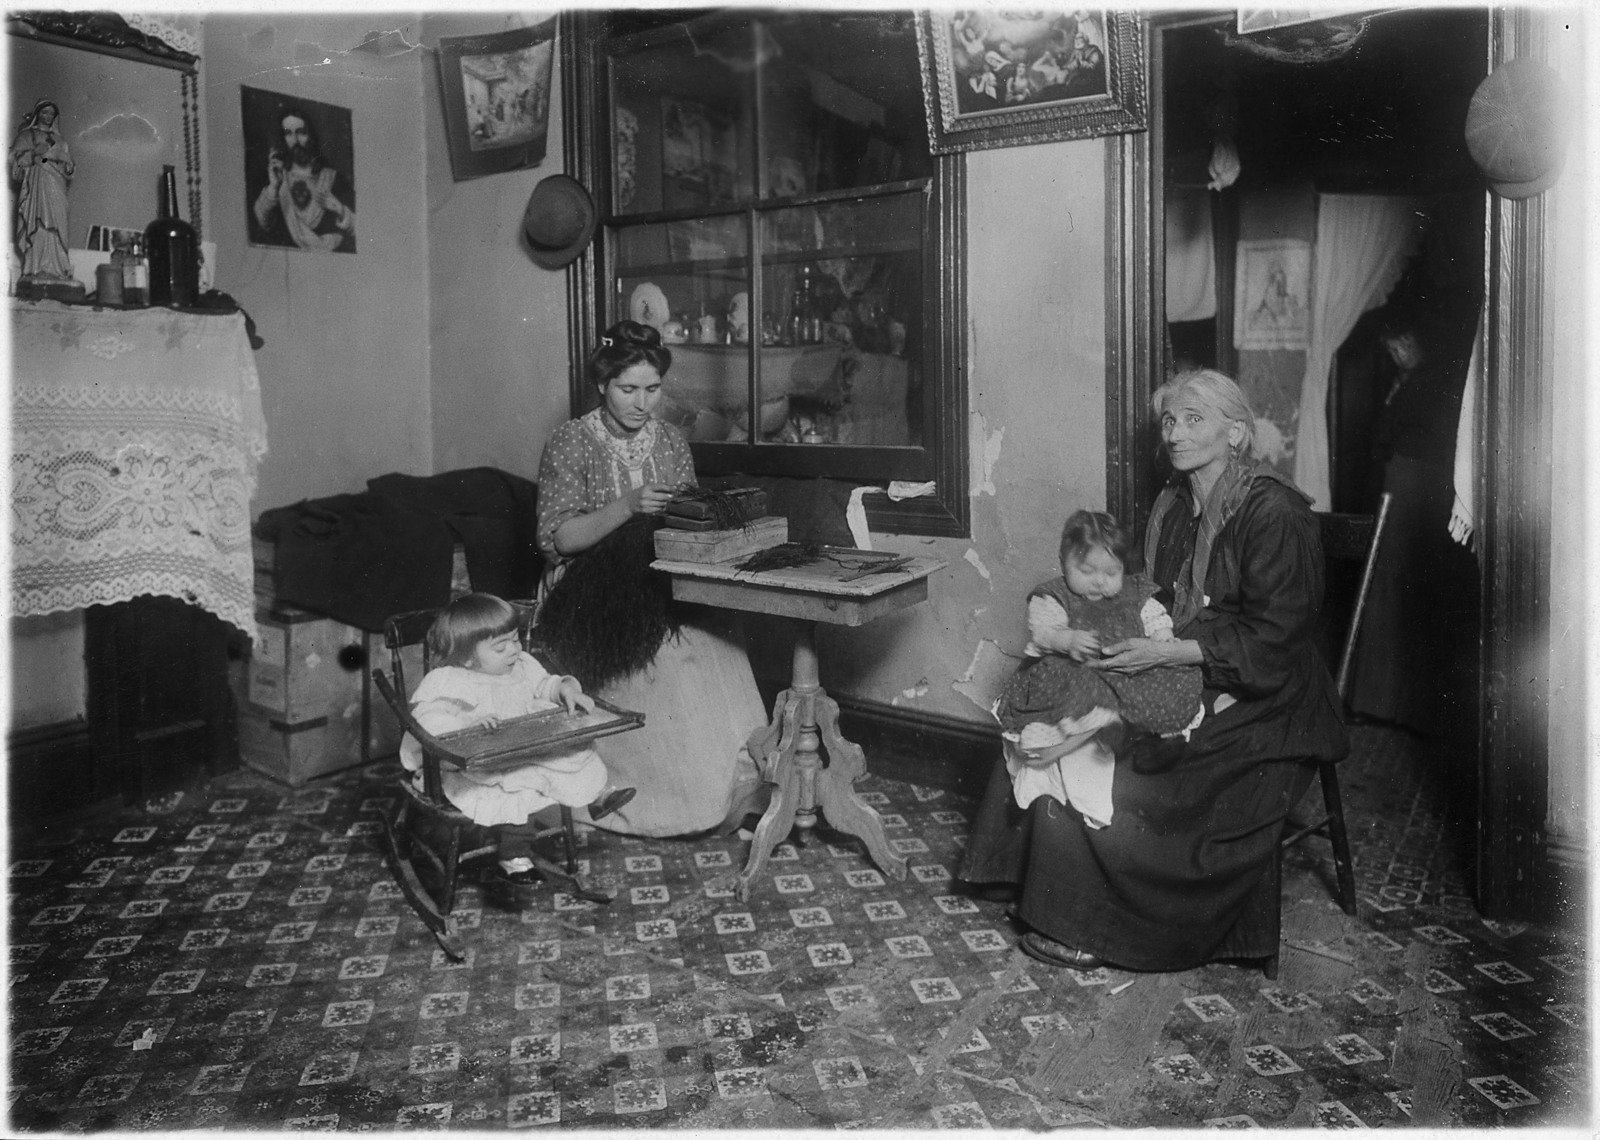 Mrs. Larocca making willow plumes in an unlicenced tenement., Department of Commerce and Labor. Children's Bureau.	(1912 - 1913), NARA Online Public Access, In Copyright